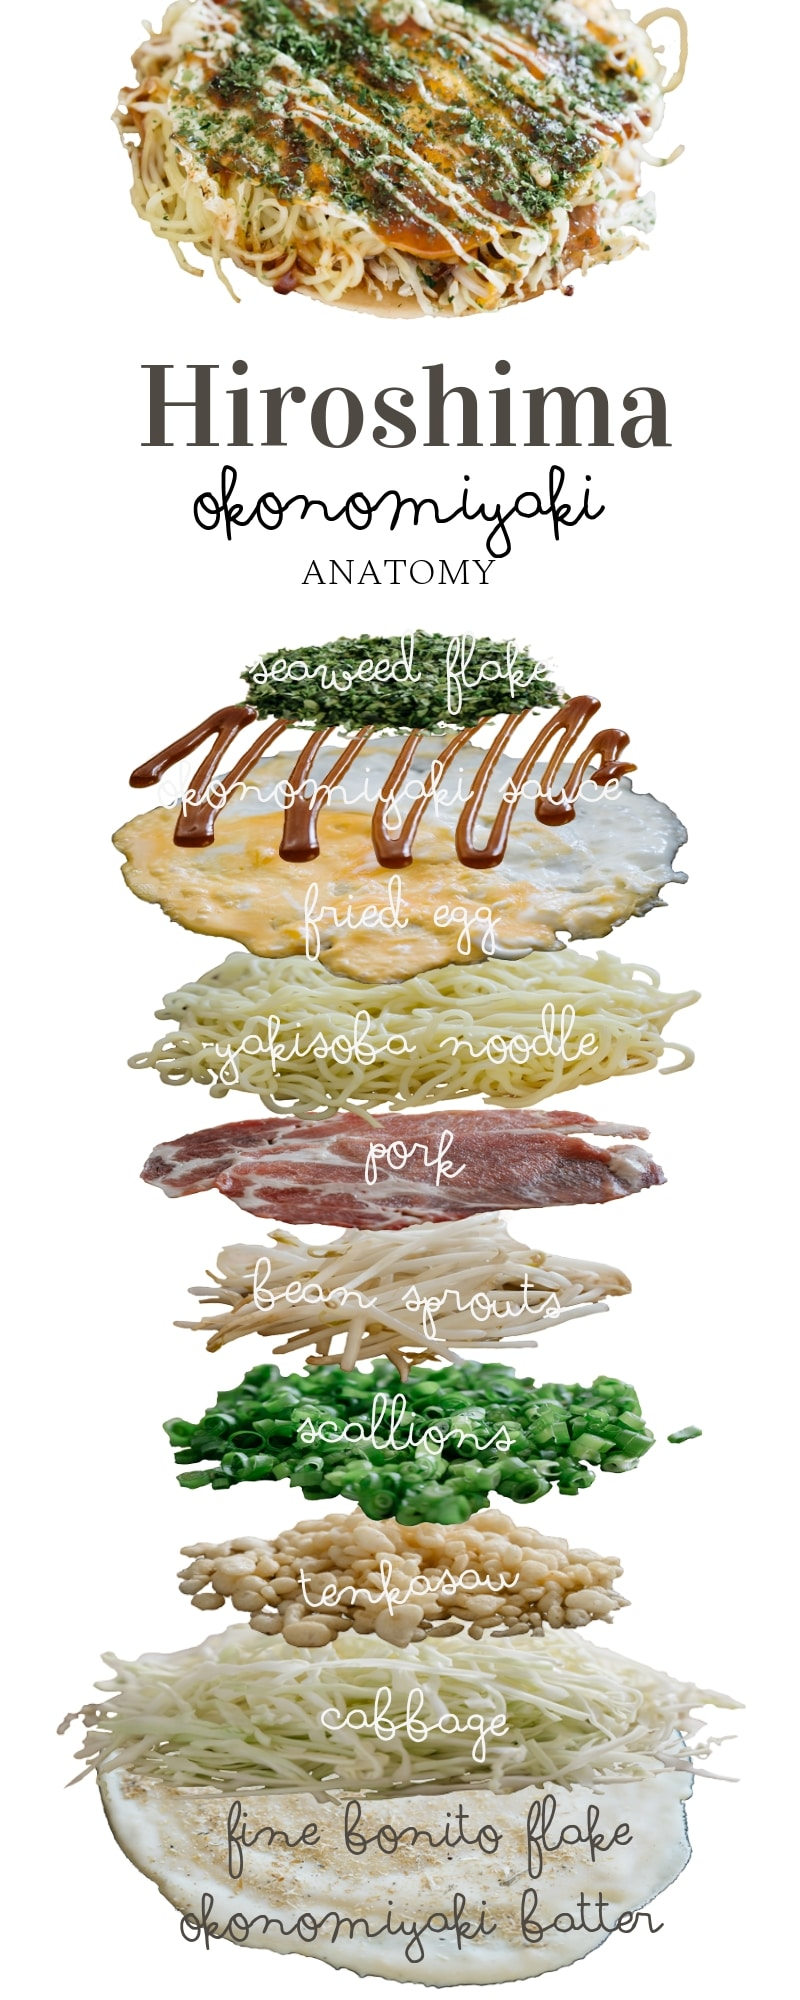 Hiroshima Okonomiyaki infographic- showing each layer of ingredients